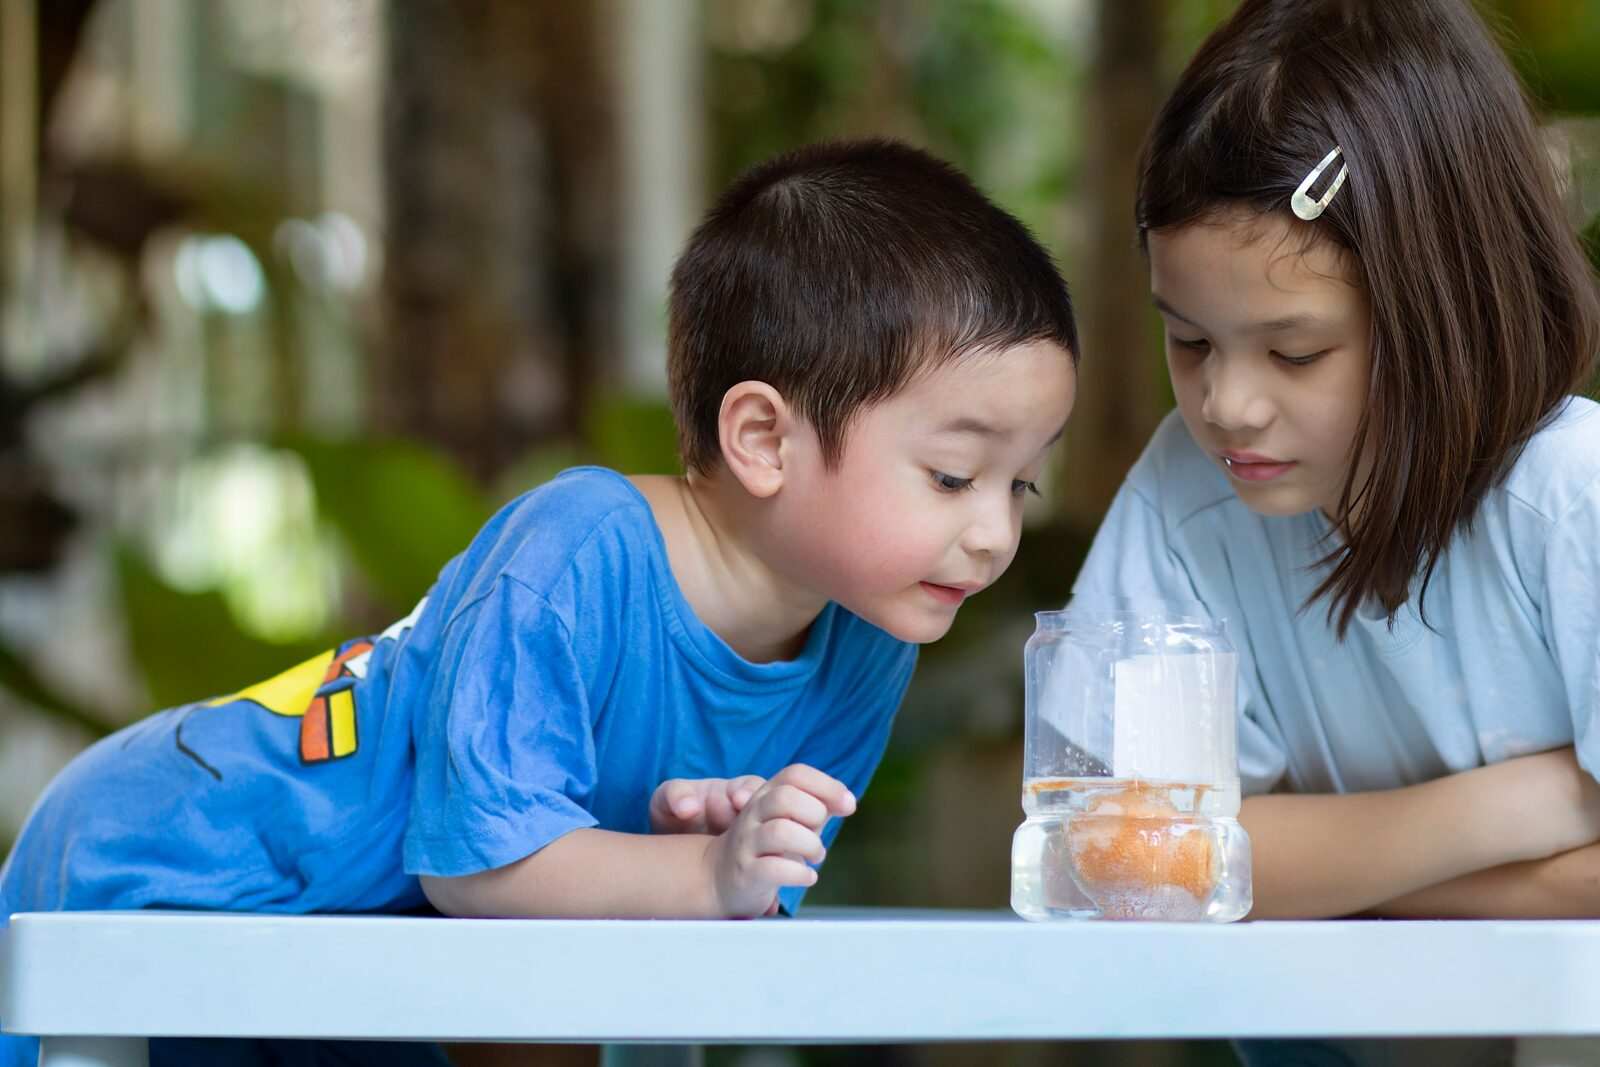 two kids looking at an egg in a jar